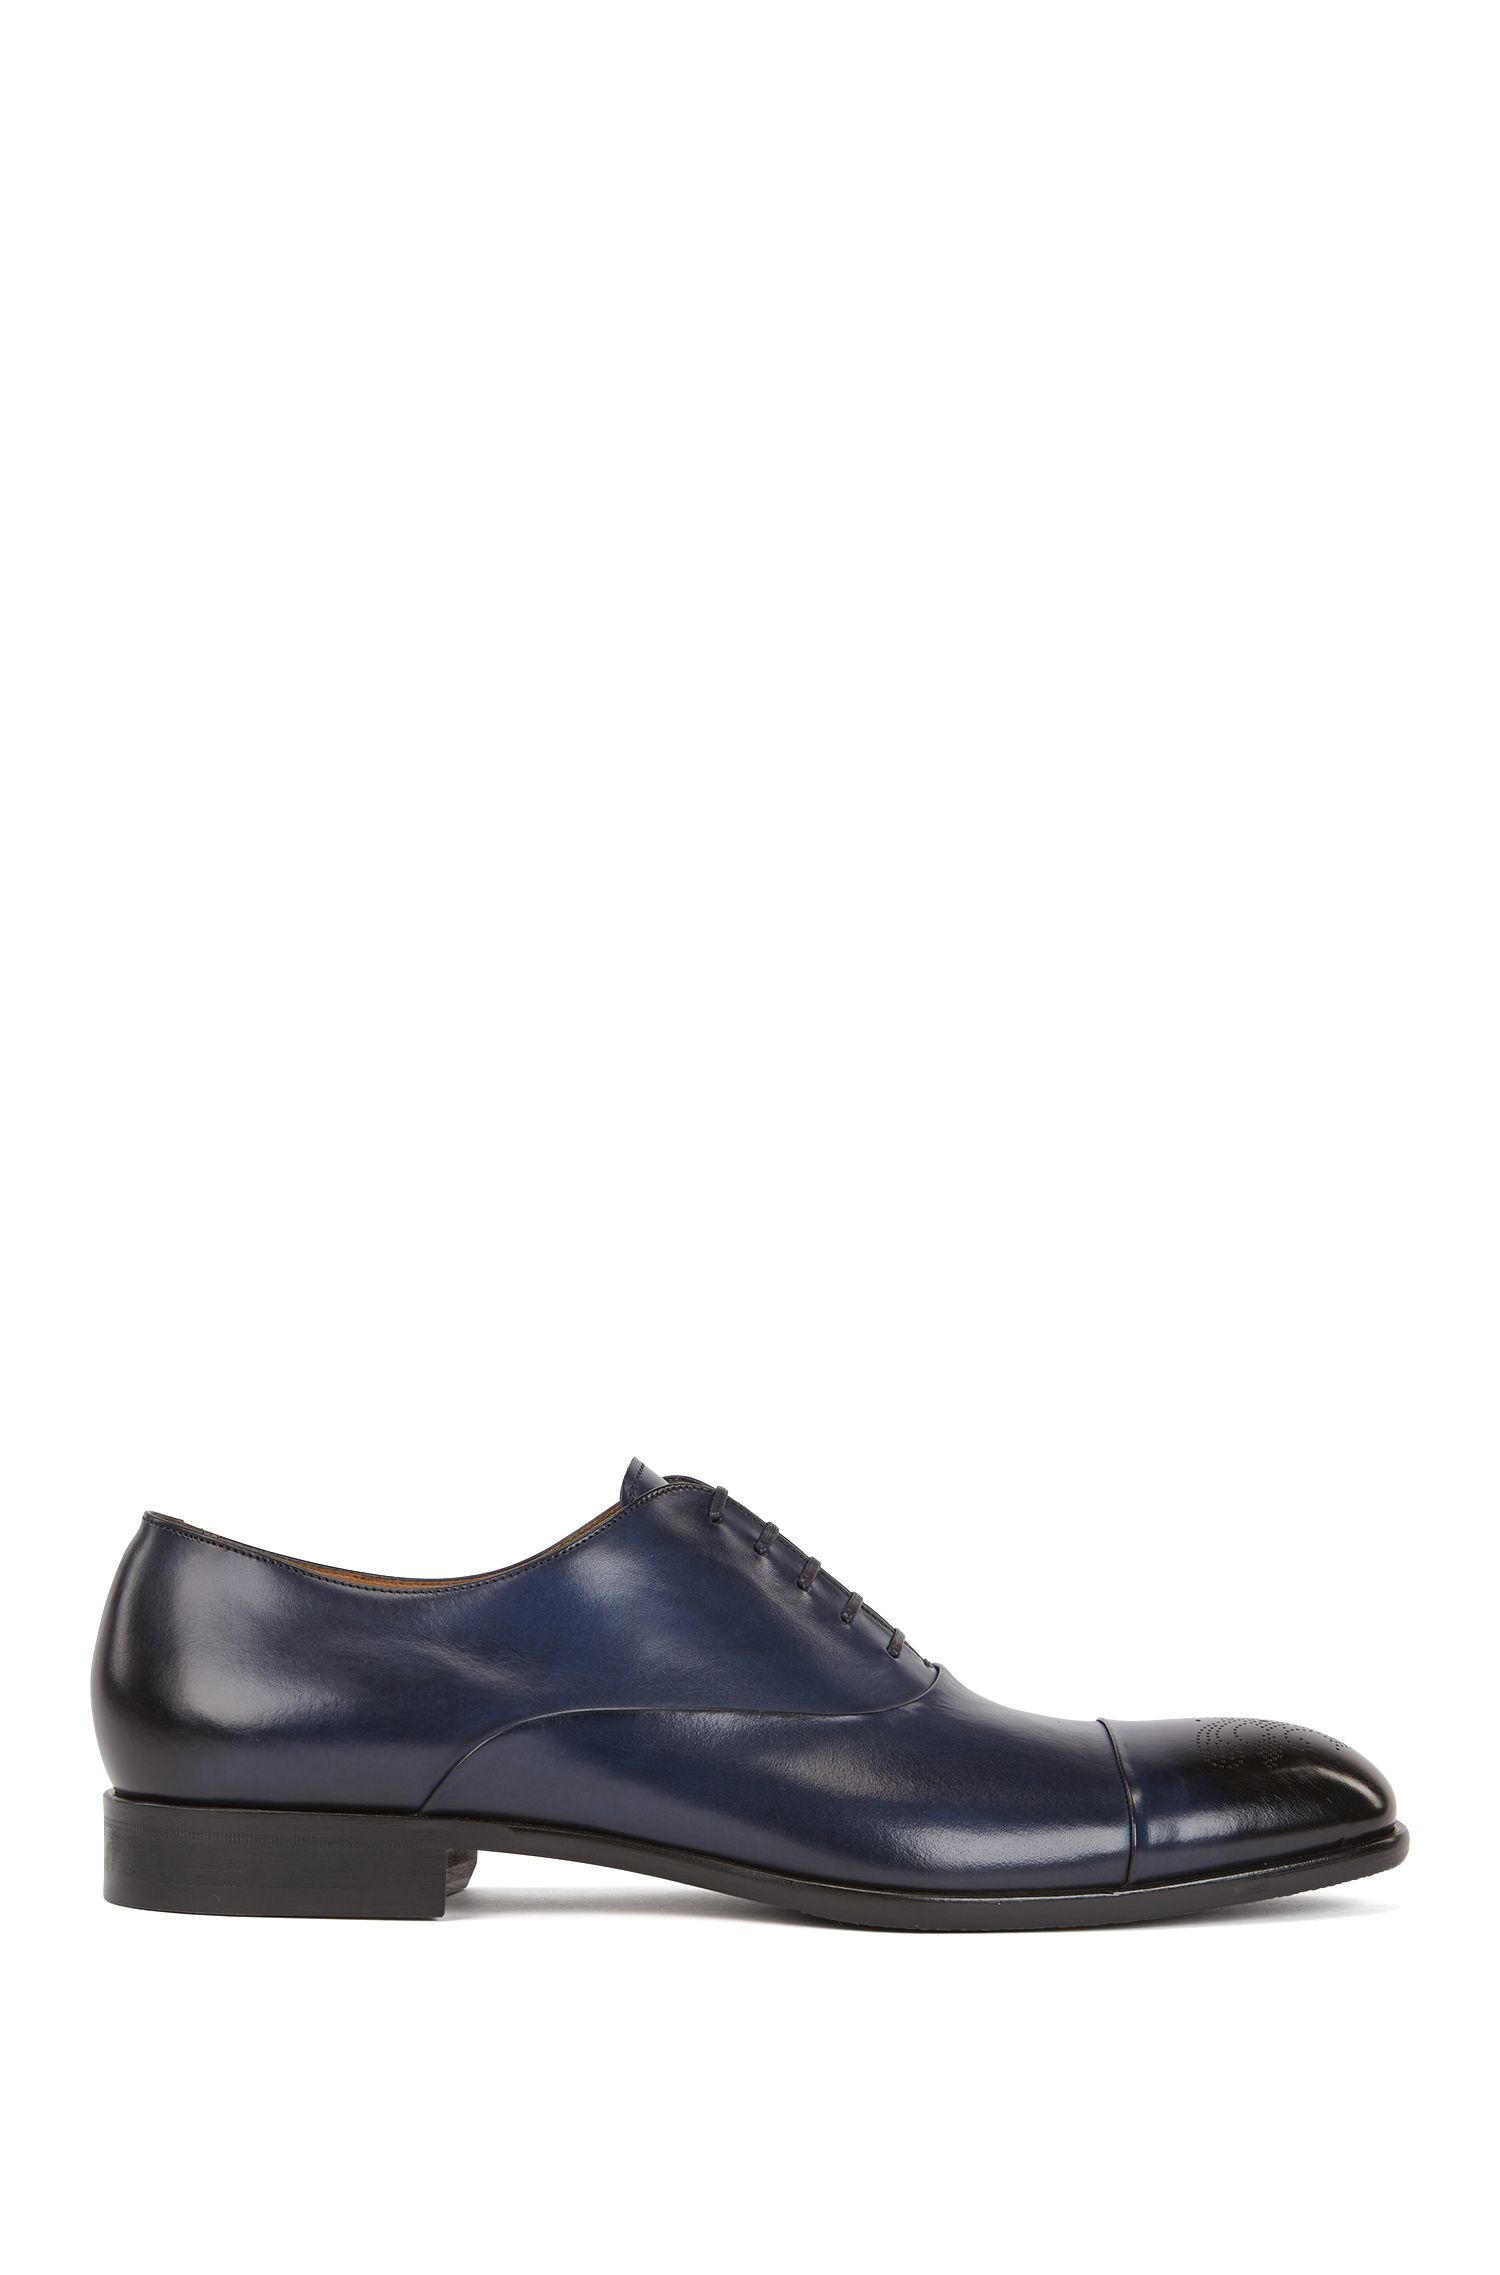 Burnished-leather Oxford shoes with laser-cut brogue pattern, Dark Blue